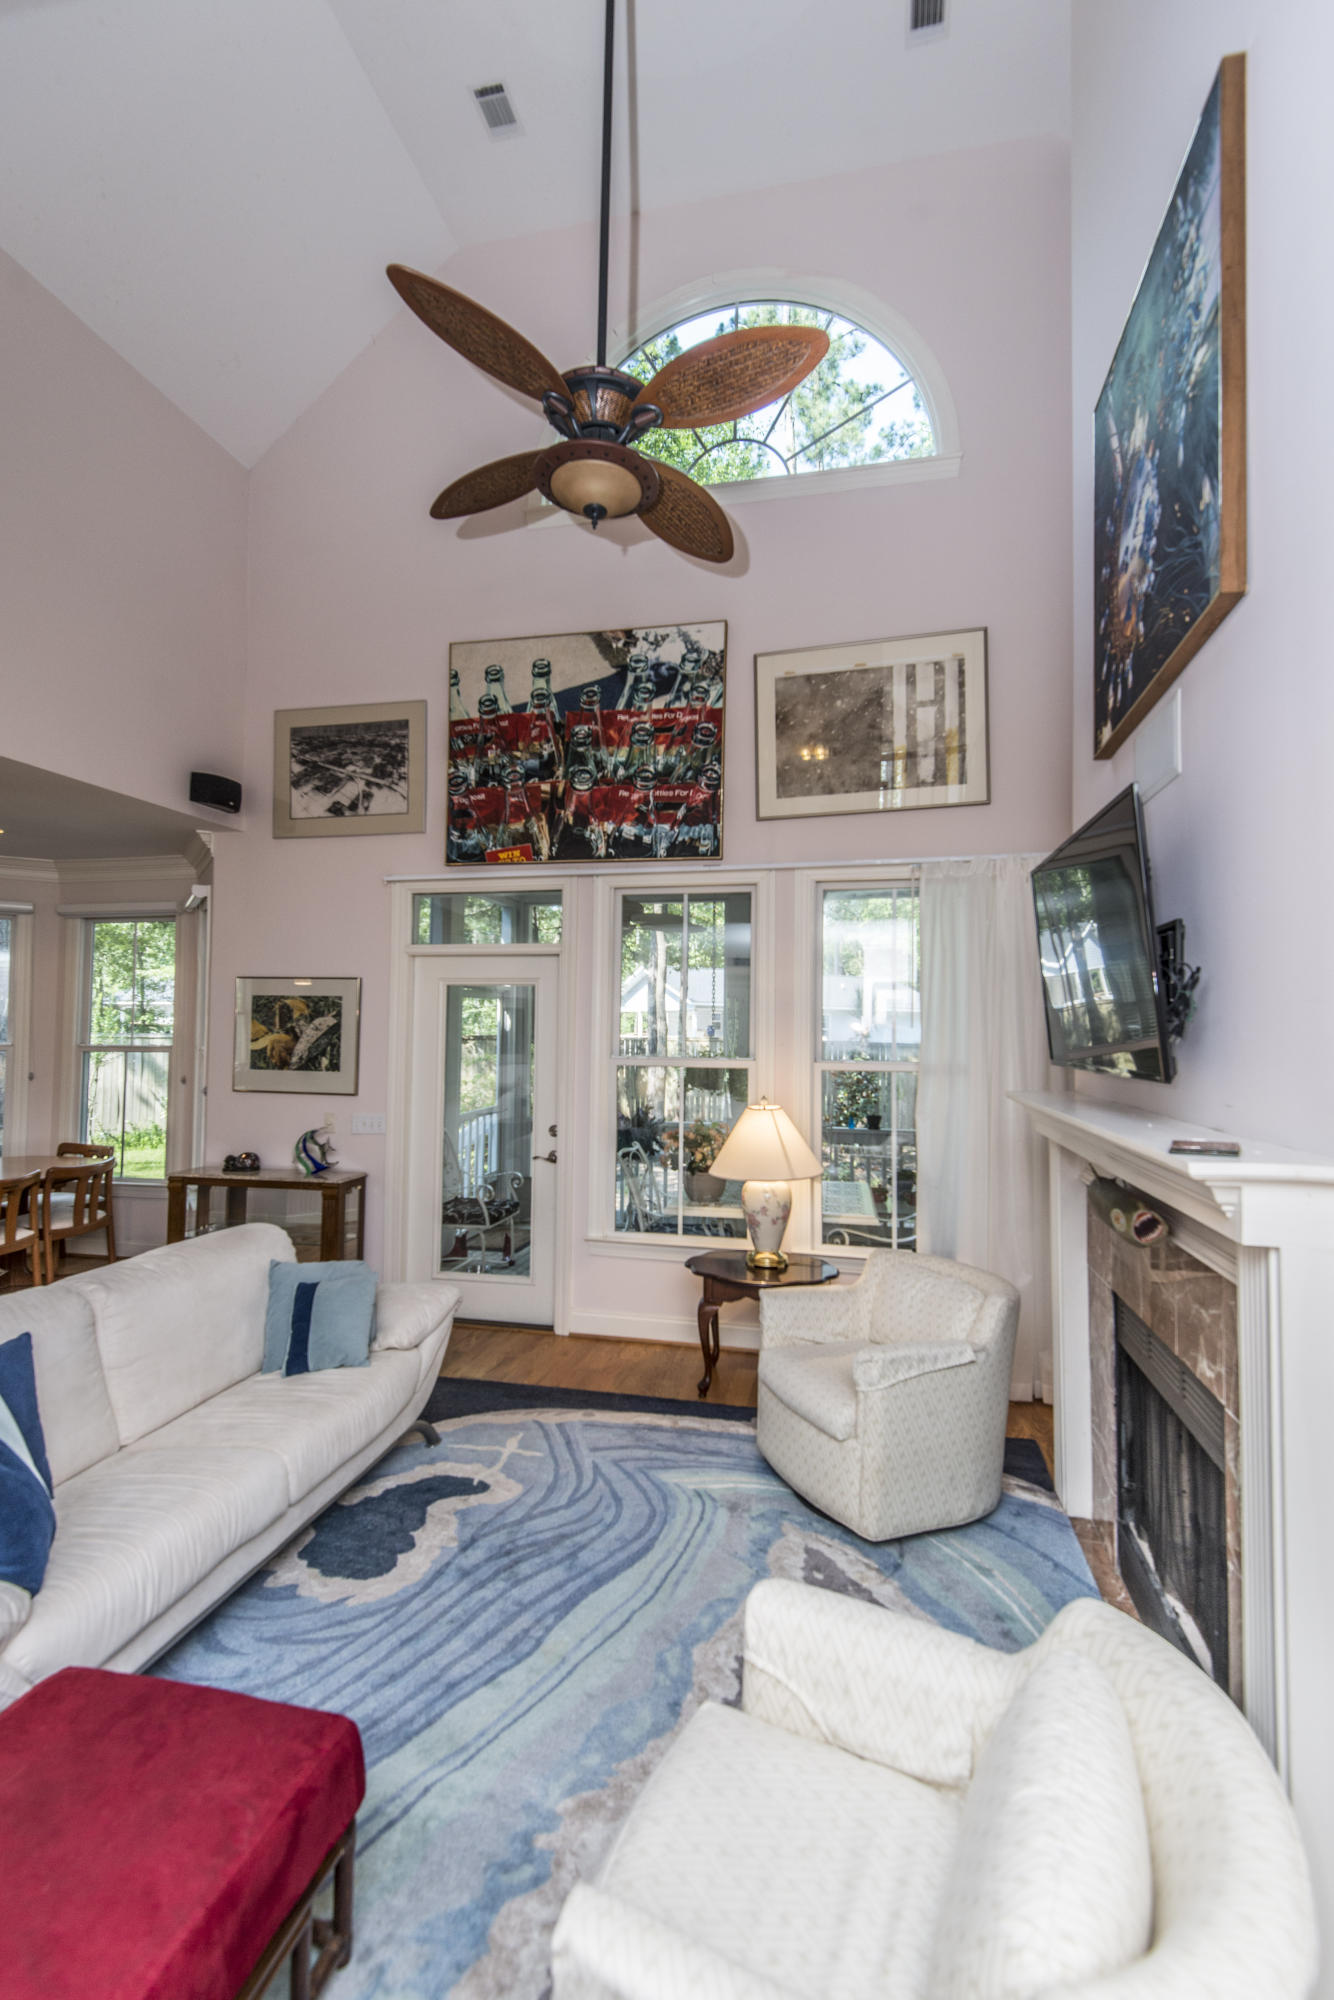 The Villages In St Johns Woods Homes For Sale - 4087 Amy, Johns Island, SC - 14